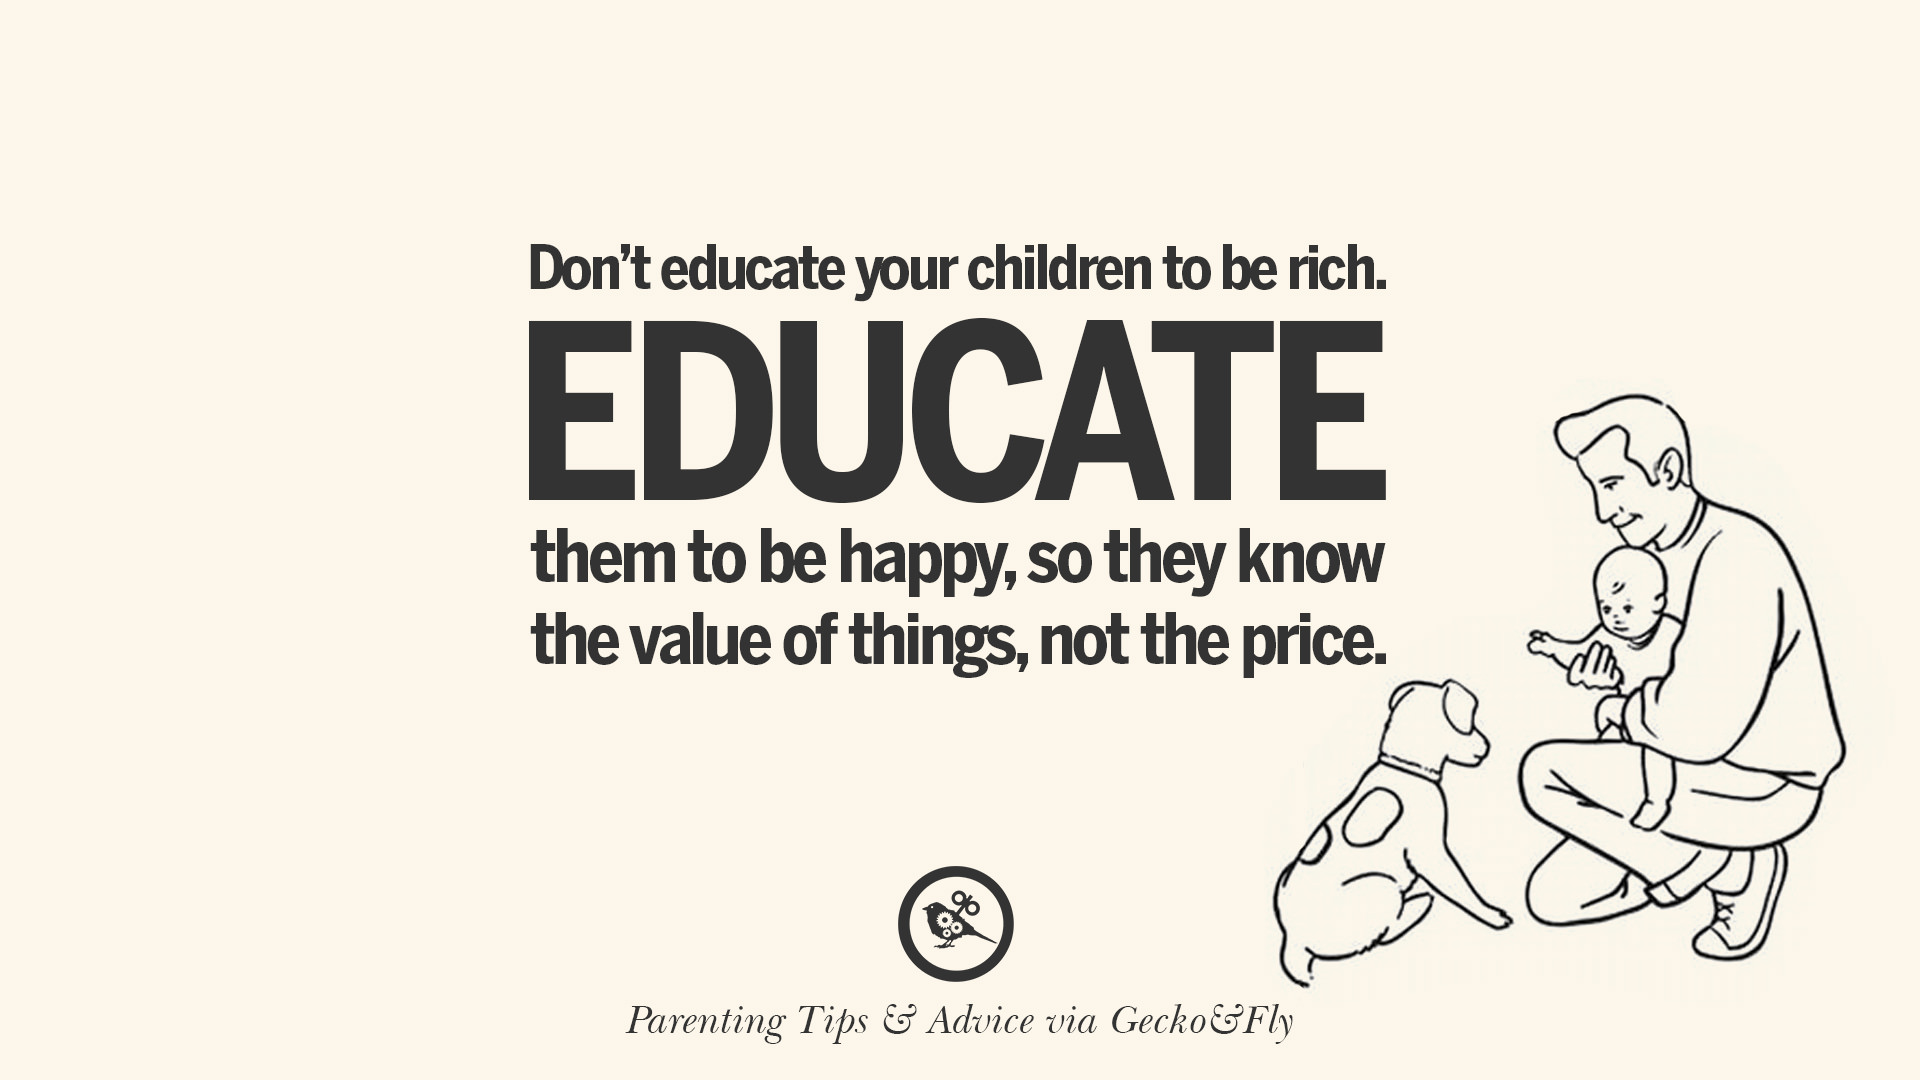 Donu0027t Educate Your Children To Be Rich. Educate Them To Be Happy, So They  Know The Value Of Things, Not The Price.